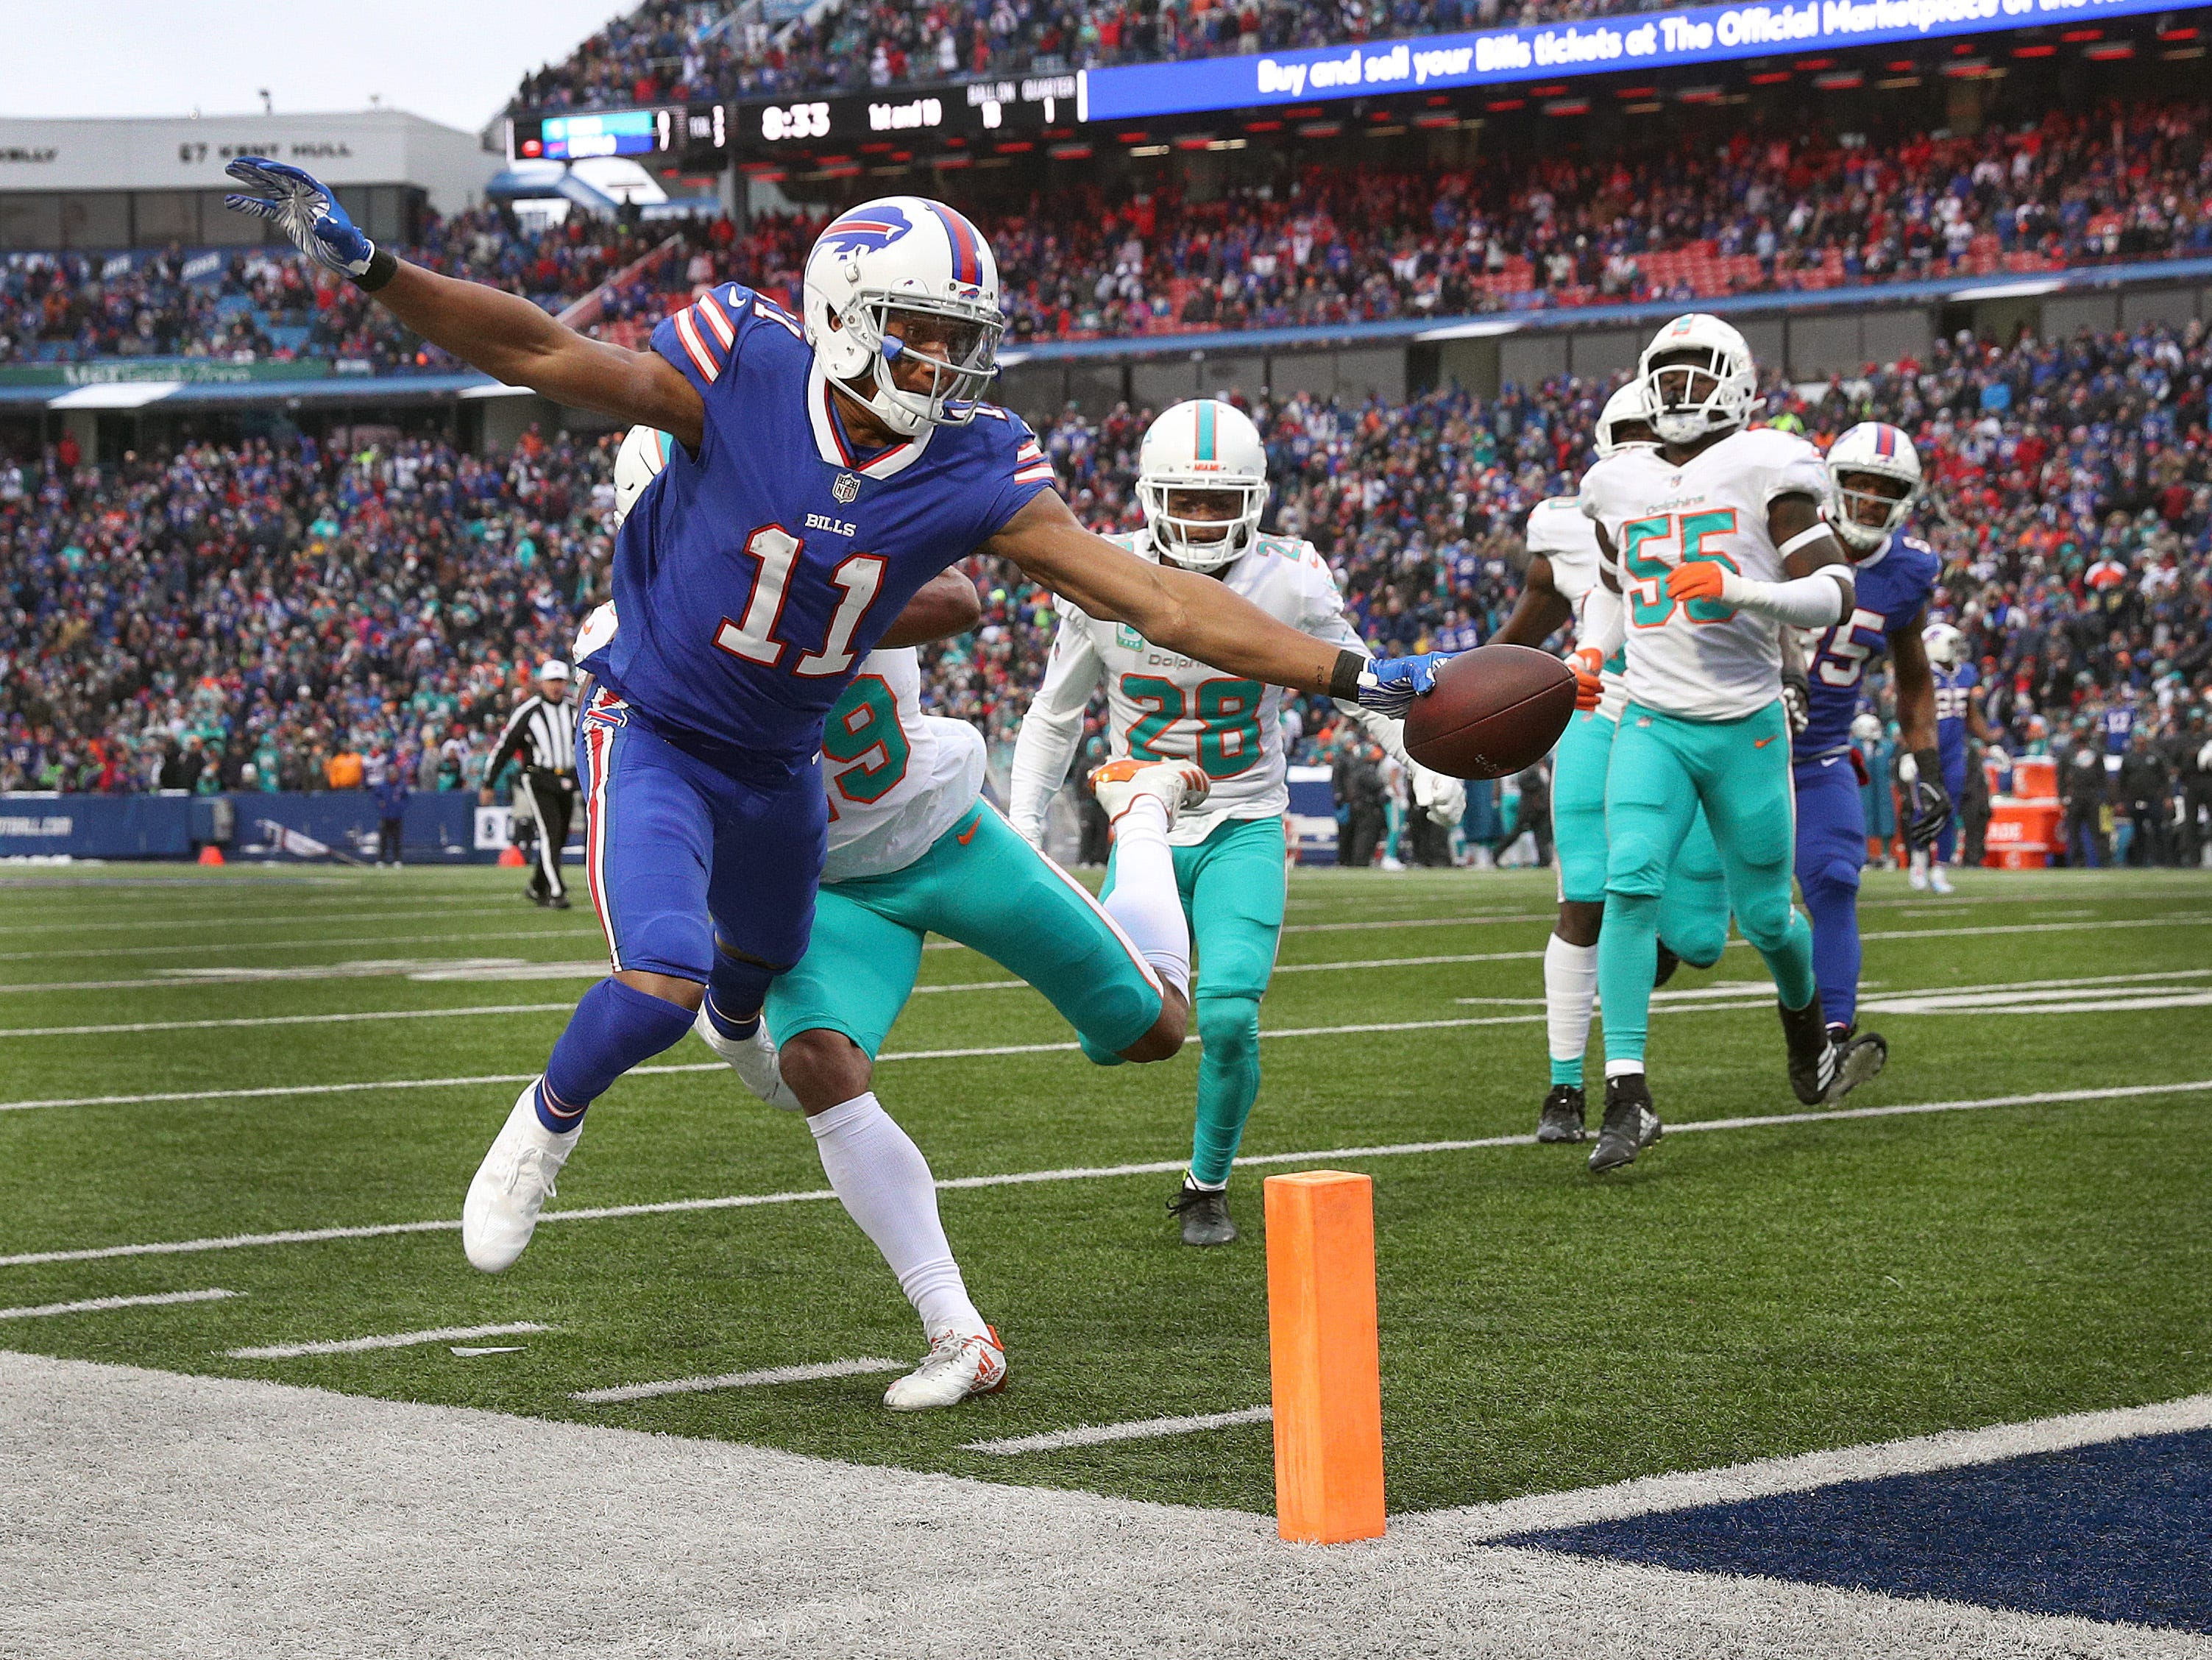 Bill receiver Zay Jones pokes the ball into the end zone for 18-yard touchdown reception.  The Bills beat the Dolphins 42-17.